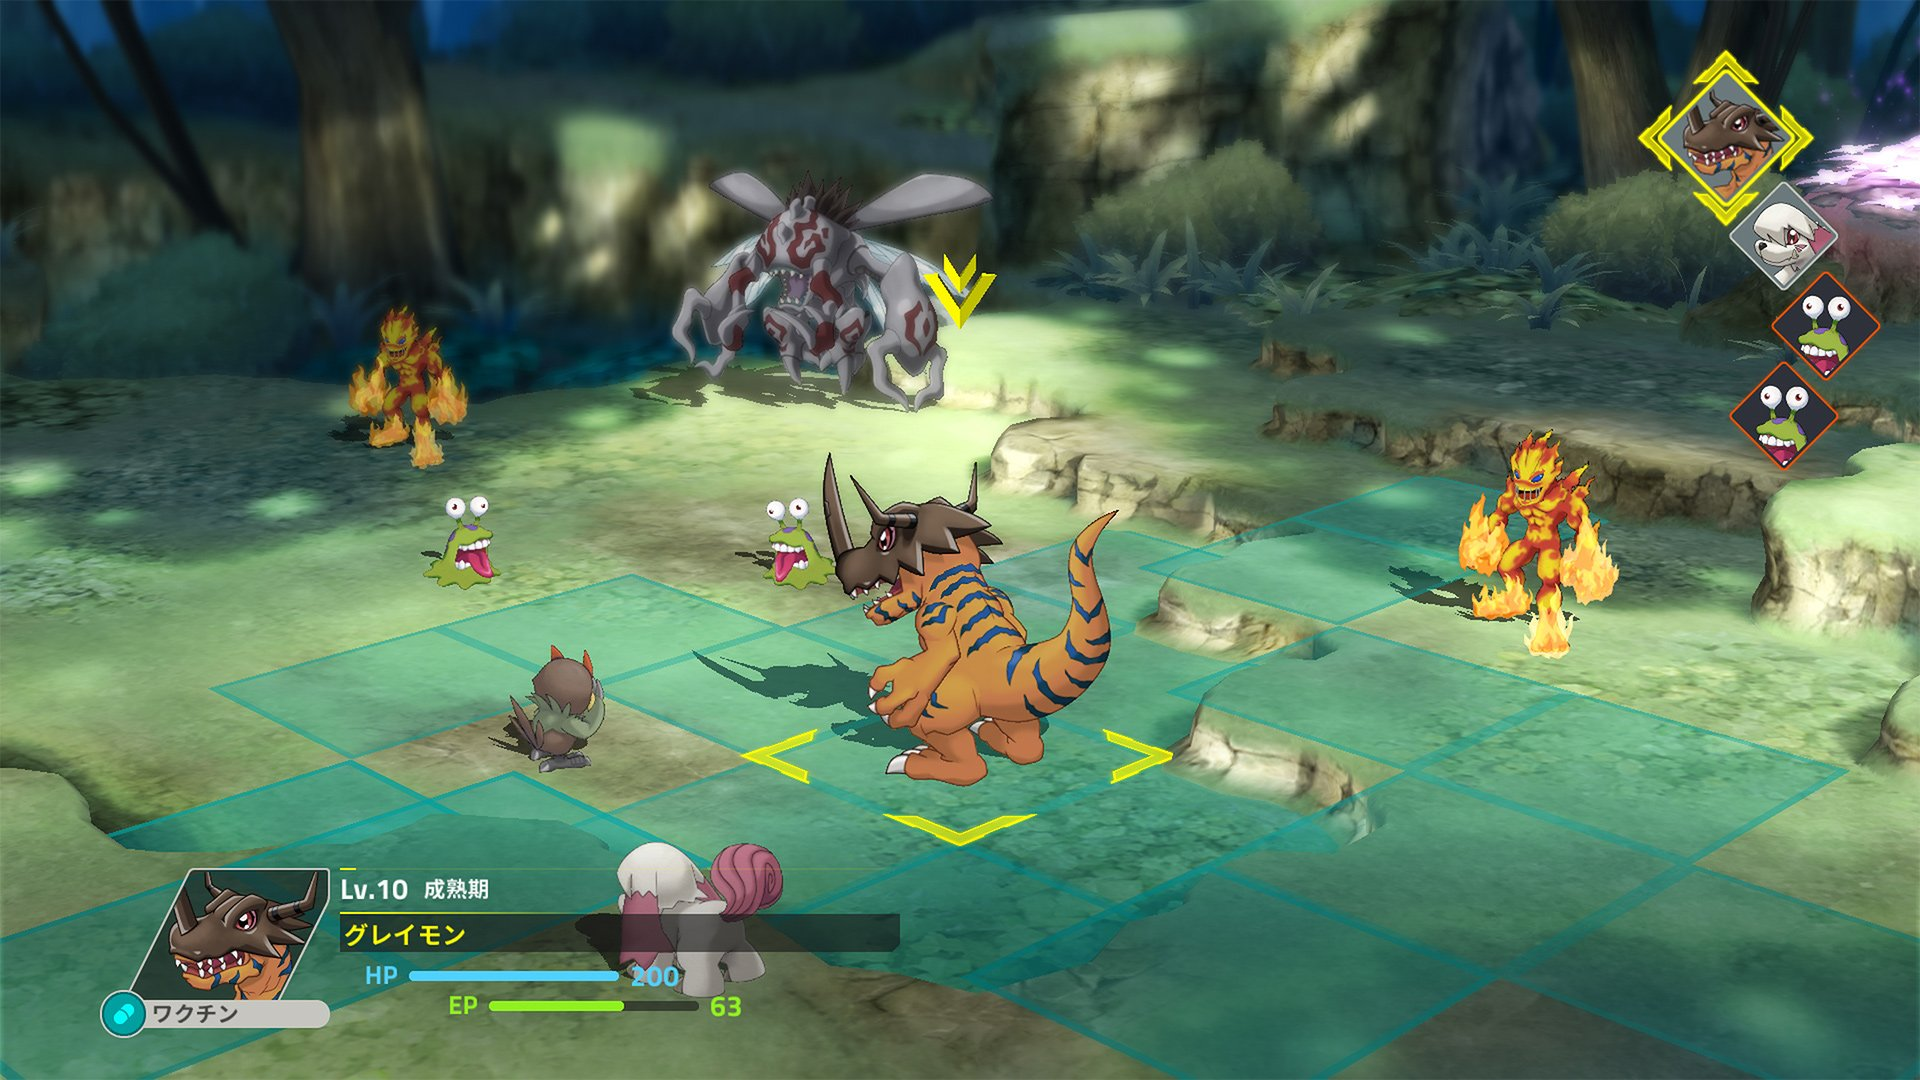 Don't worry, the Digimon tactics game hasn't been delayed again screenshot